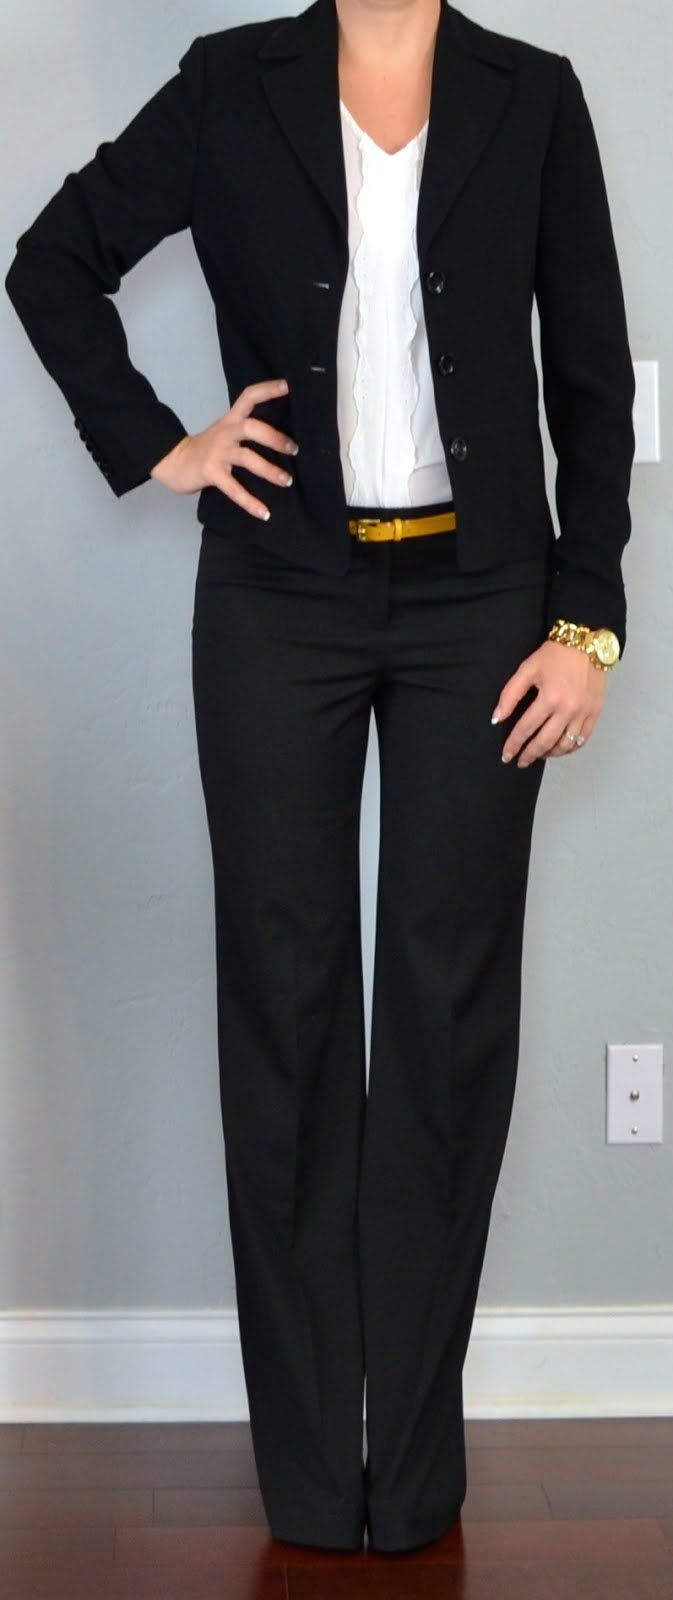 Outfit Posts: outfit post: black suit jacket, black suit pants, white ruffle blouse, yellow belt